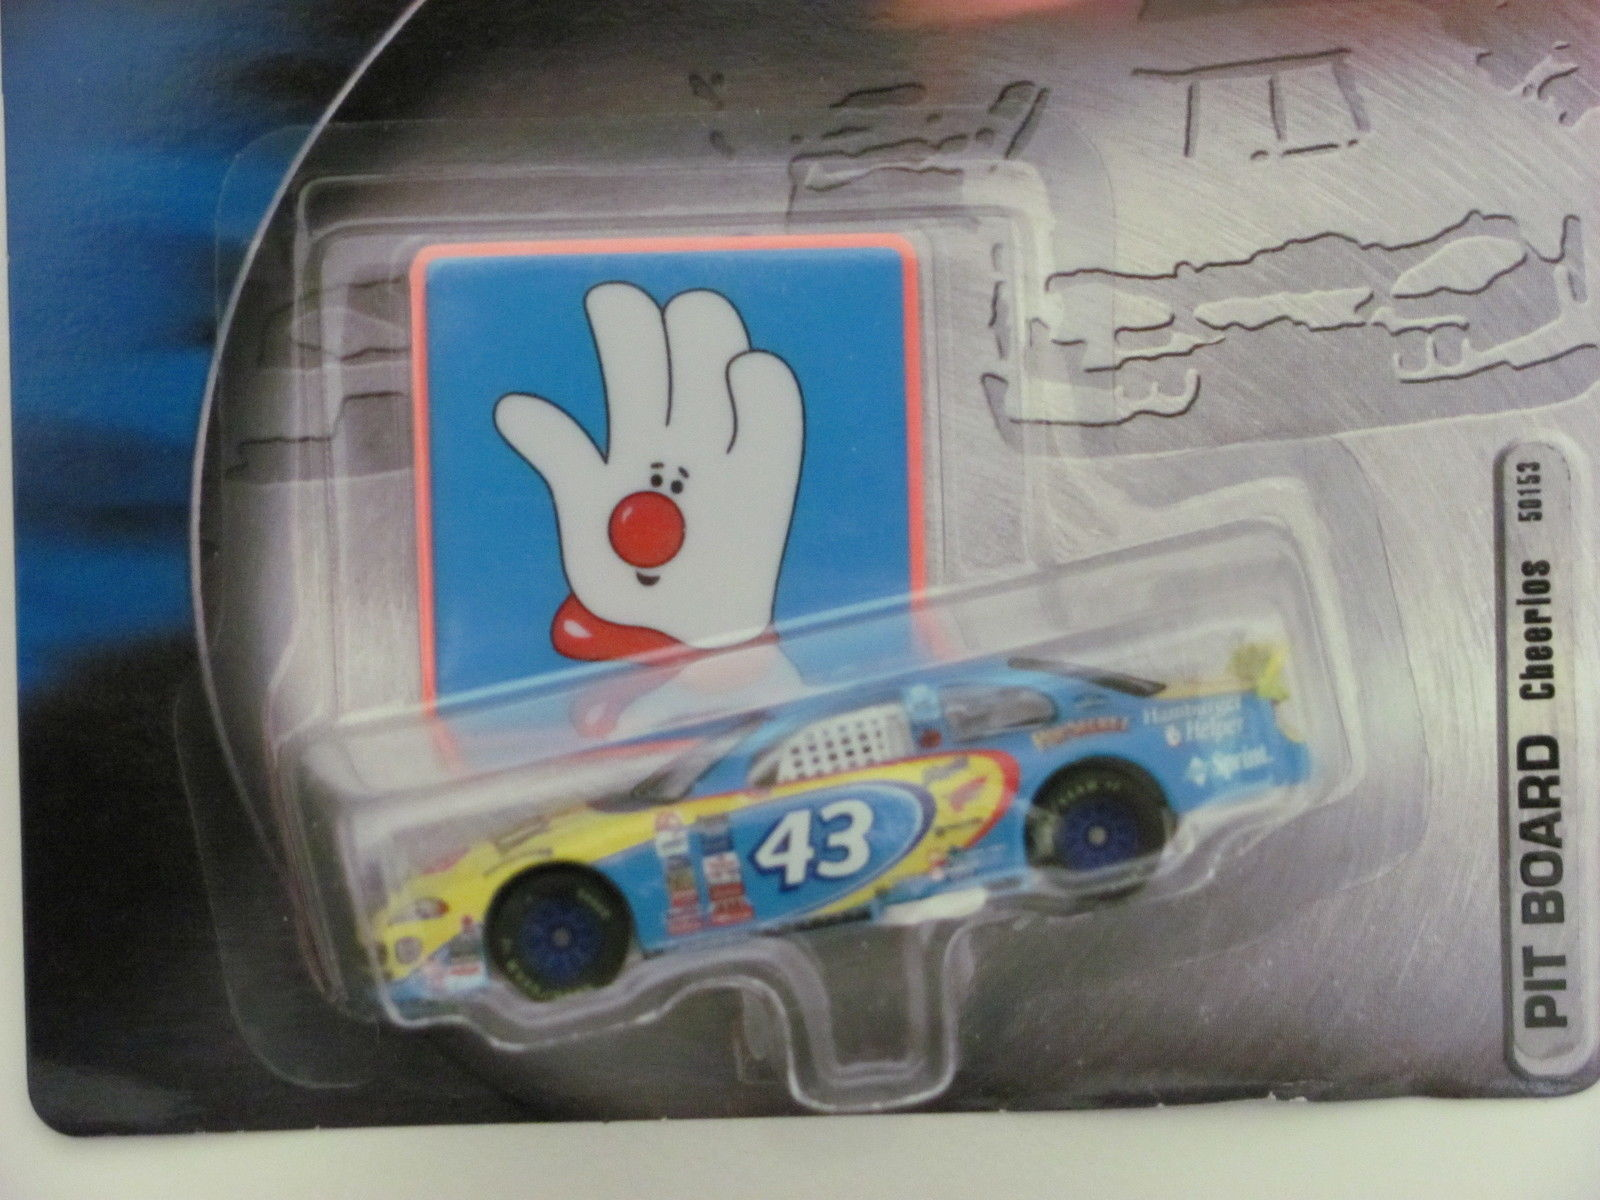 2001 NASCAR HOT WHEELS RACING PIT BOARD CHEERIOS BLUE